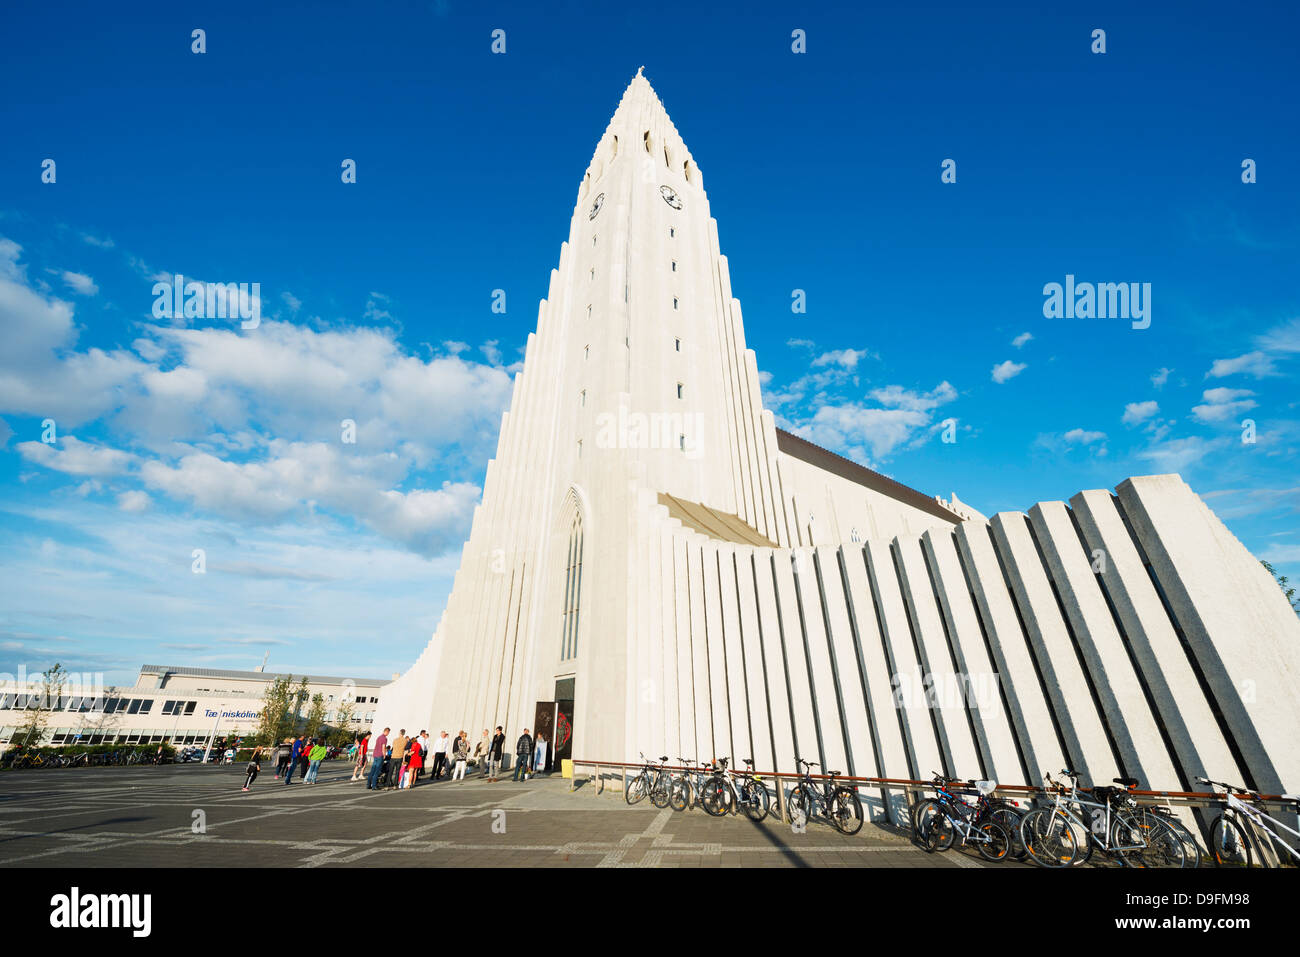 Hallgrimskirkja church, Reykjavik, Iceland, Polar Regions - Stock Image